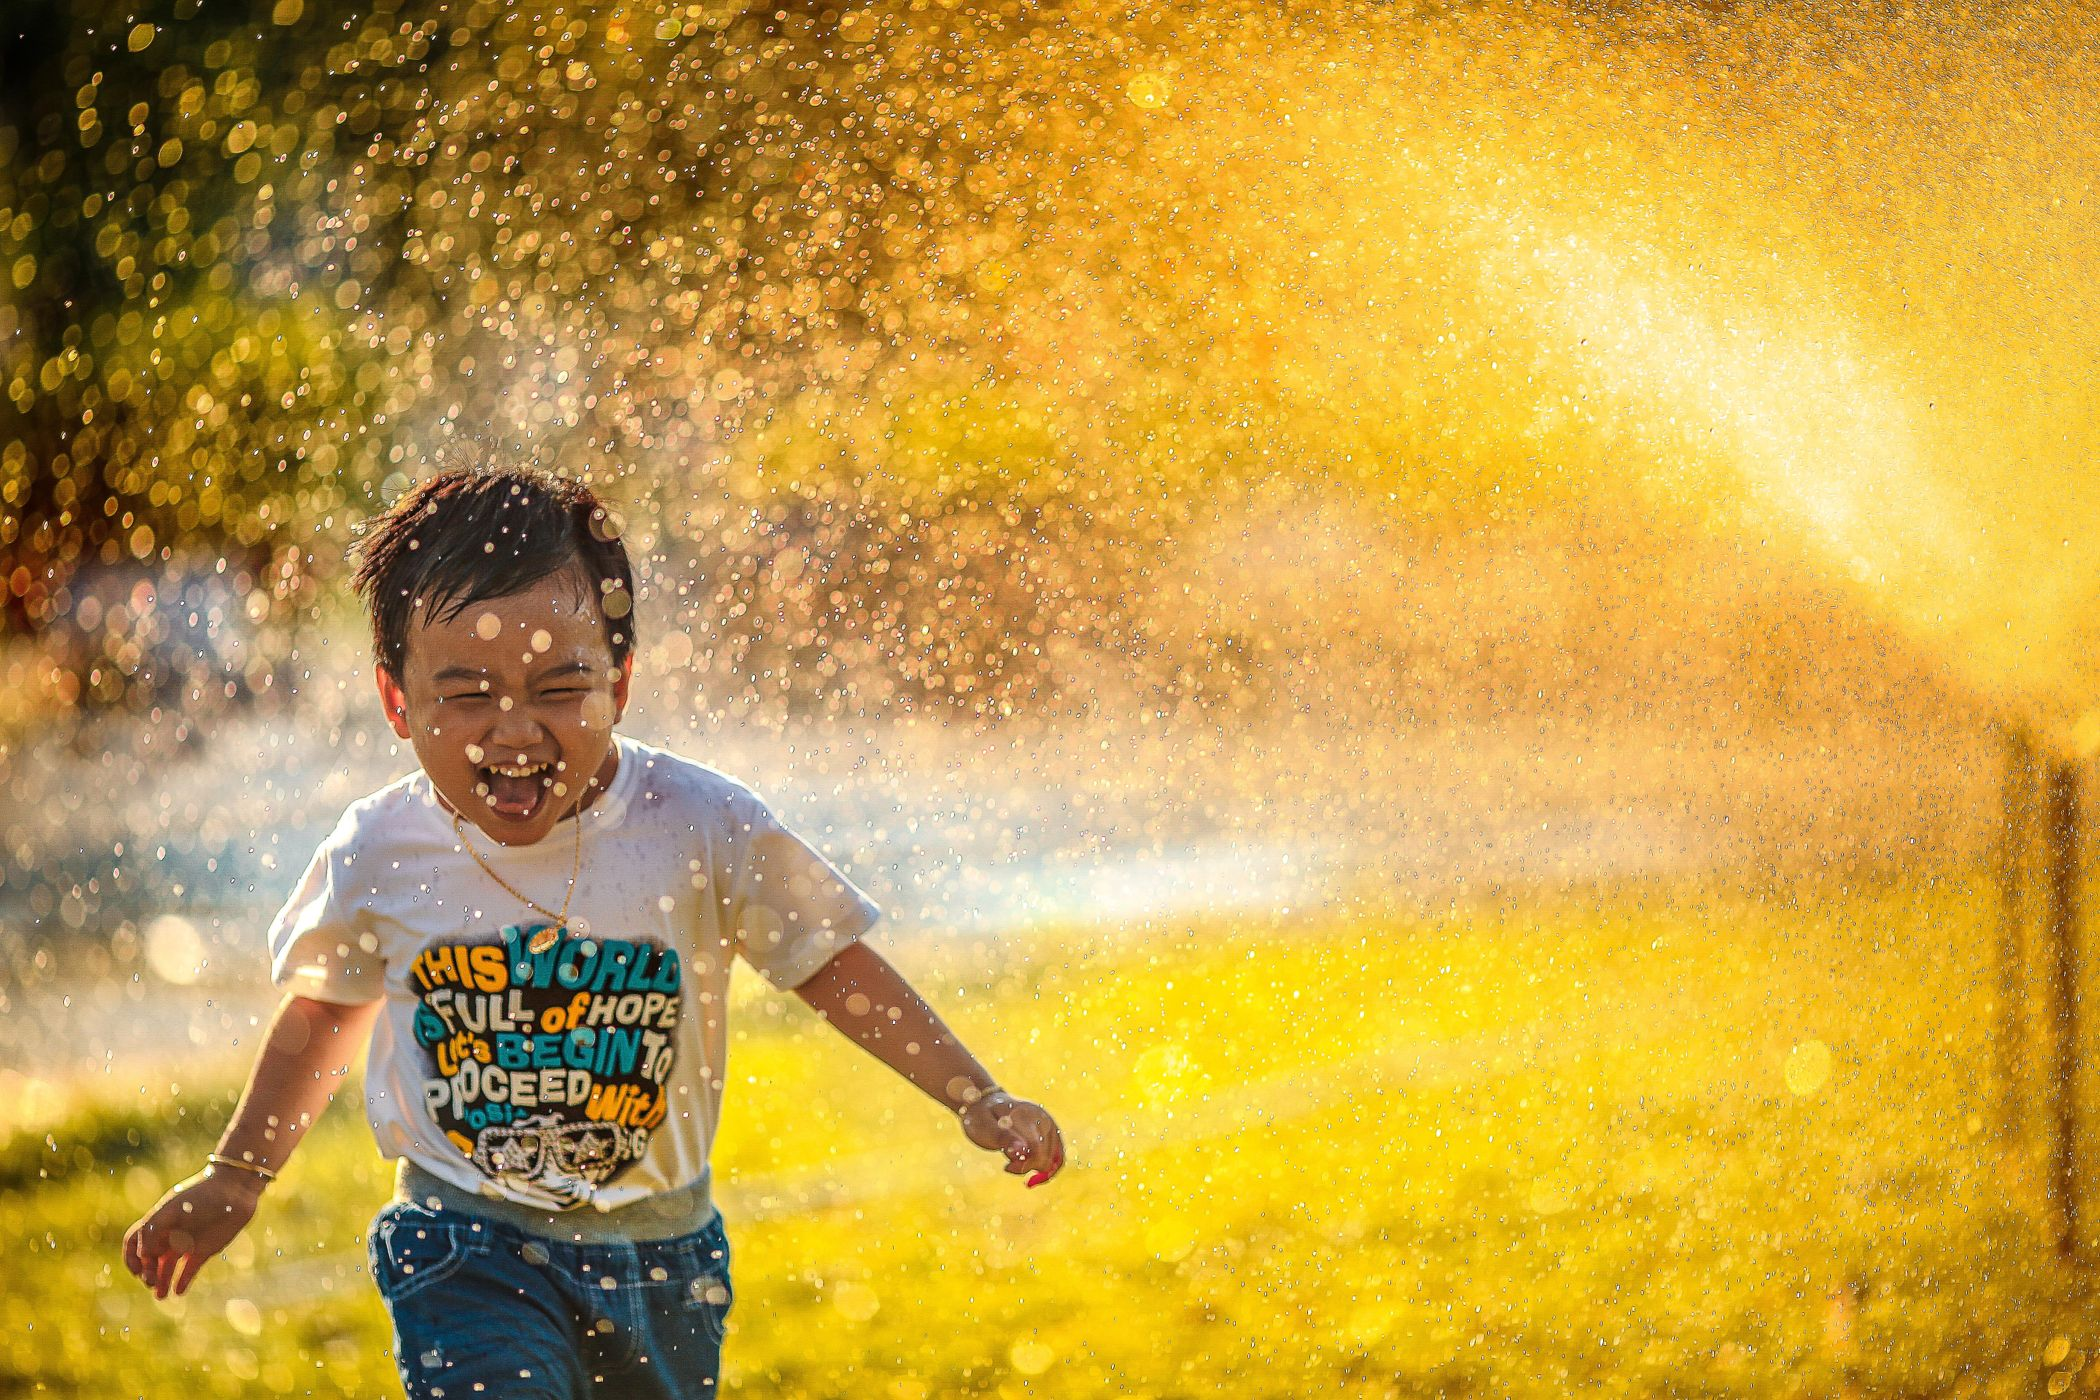 People in nature, Smile, Sky, Sunlight, Child, Fun, Happy, Green, Yellow